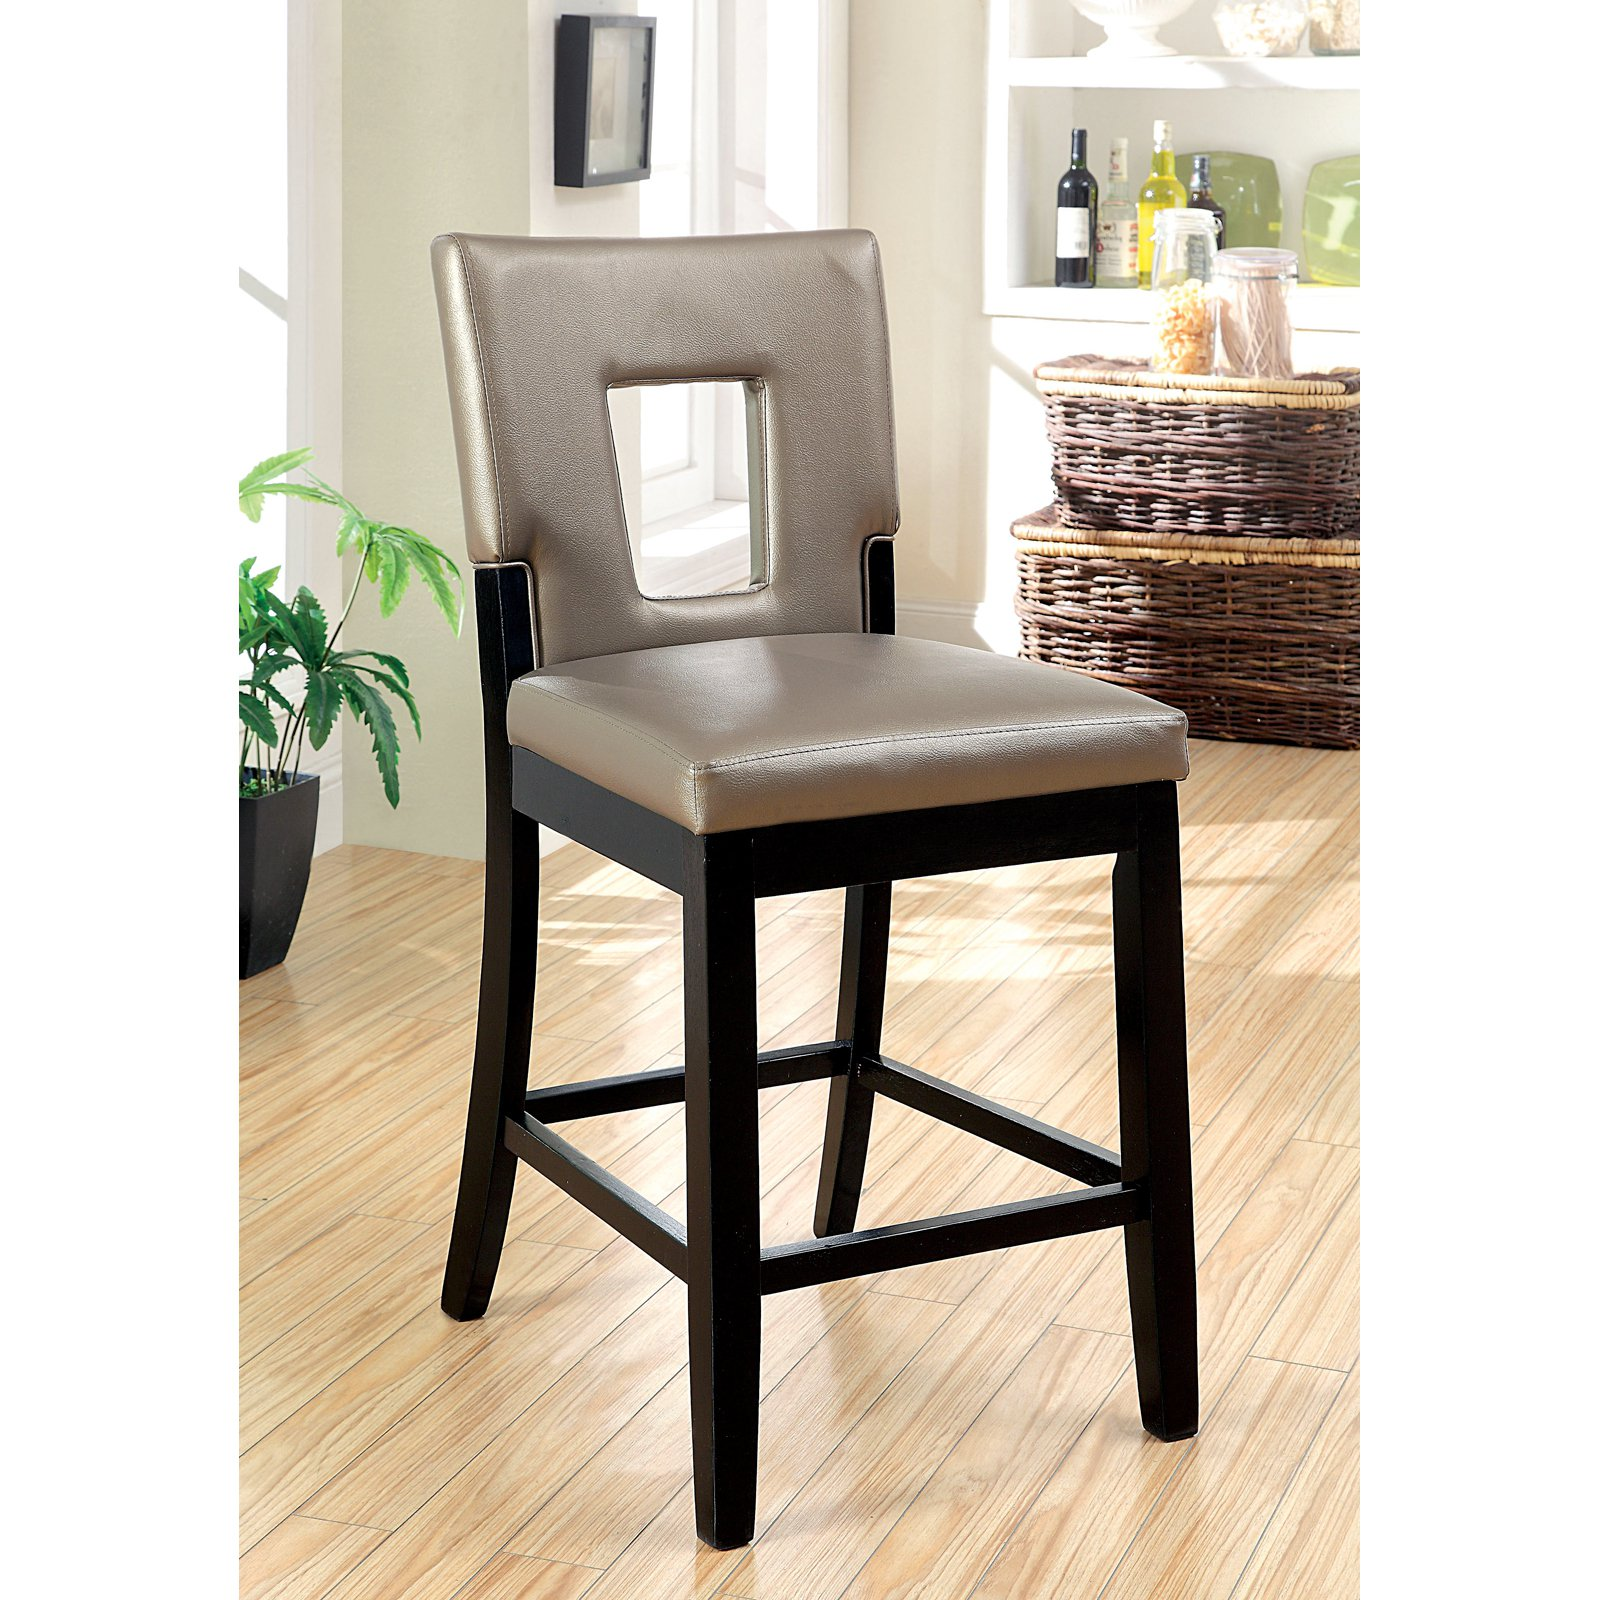 counter height chairs with back shabby chic kitchen table and furniture of america vanderbilte 2 piece open dining black walmart com